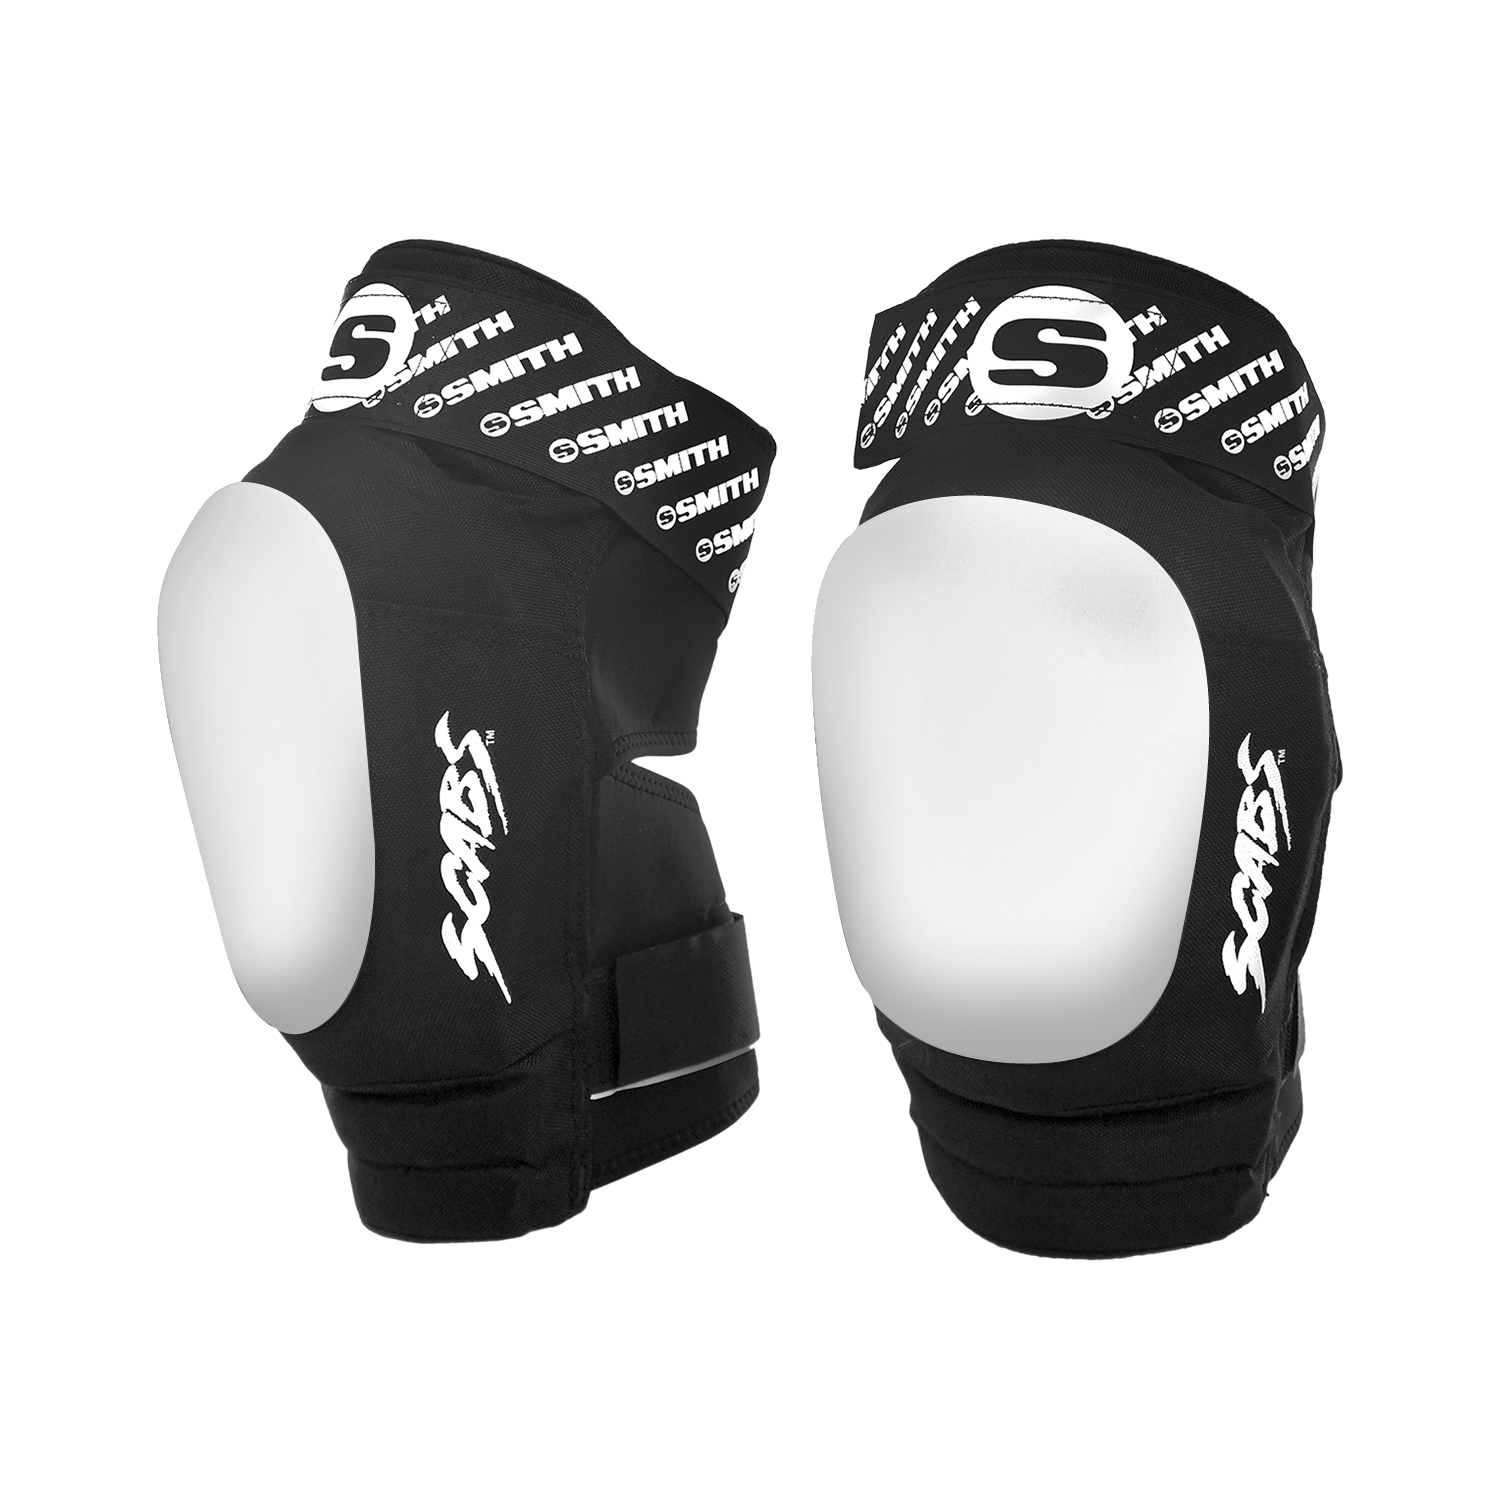 Smith Safety Gear Scabs Knee Pad X-Large Black//Red